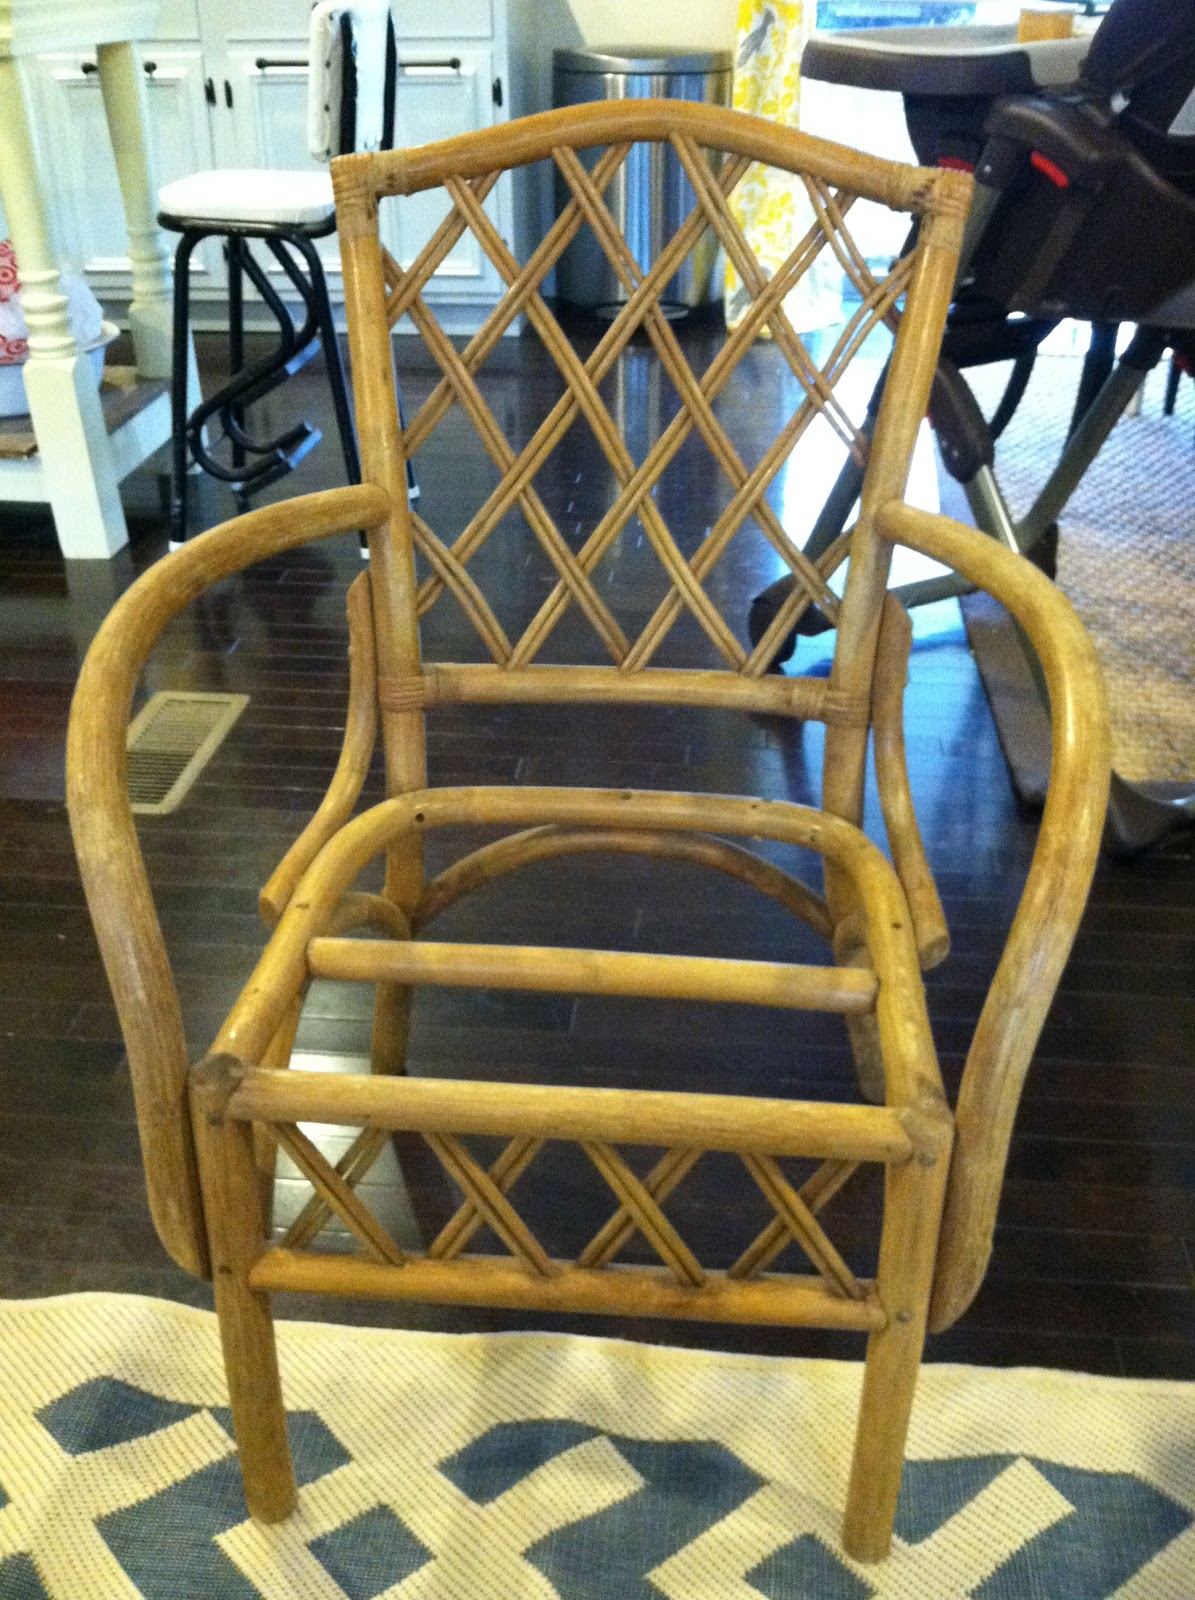 Where Can I Buy Cane For Chairs Home Theater Cheap Craigslist Makeover